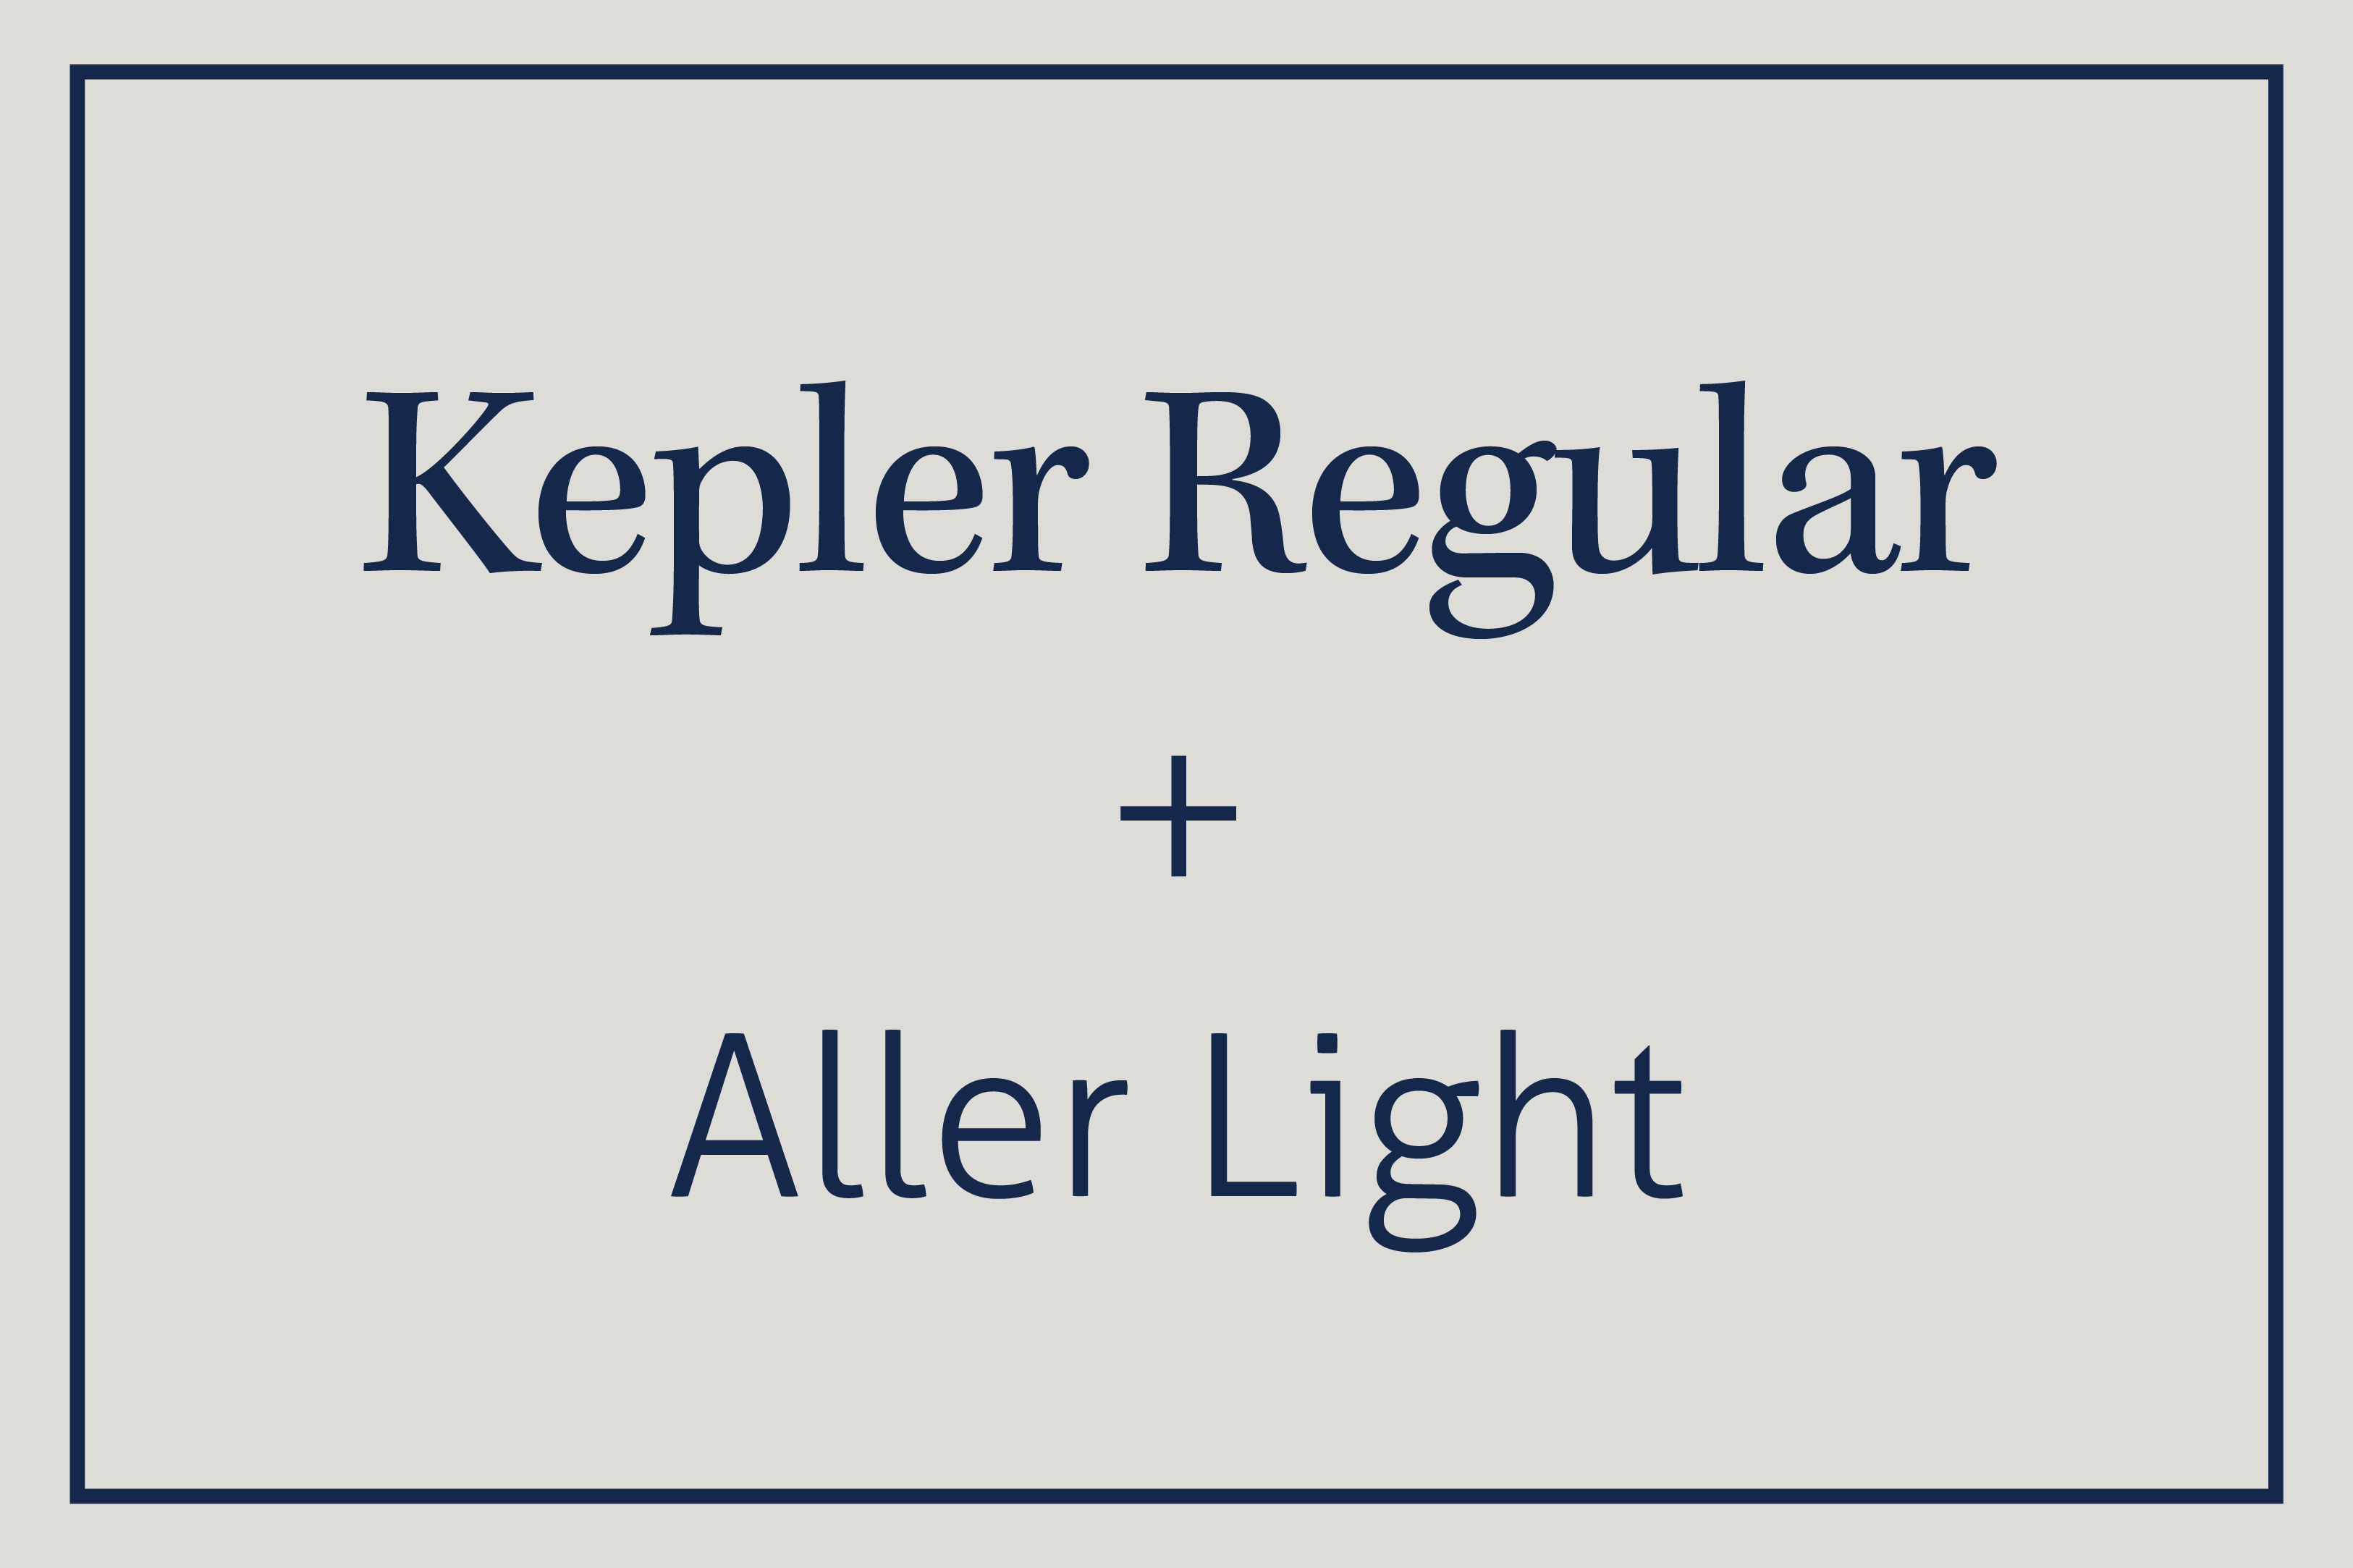 Kepler is dependable so needs to be matched with something a bit more unusual like Aller